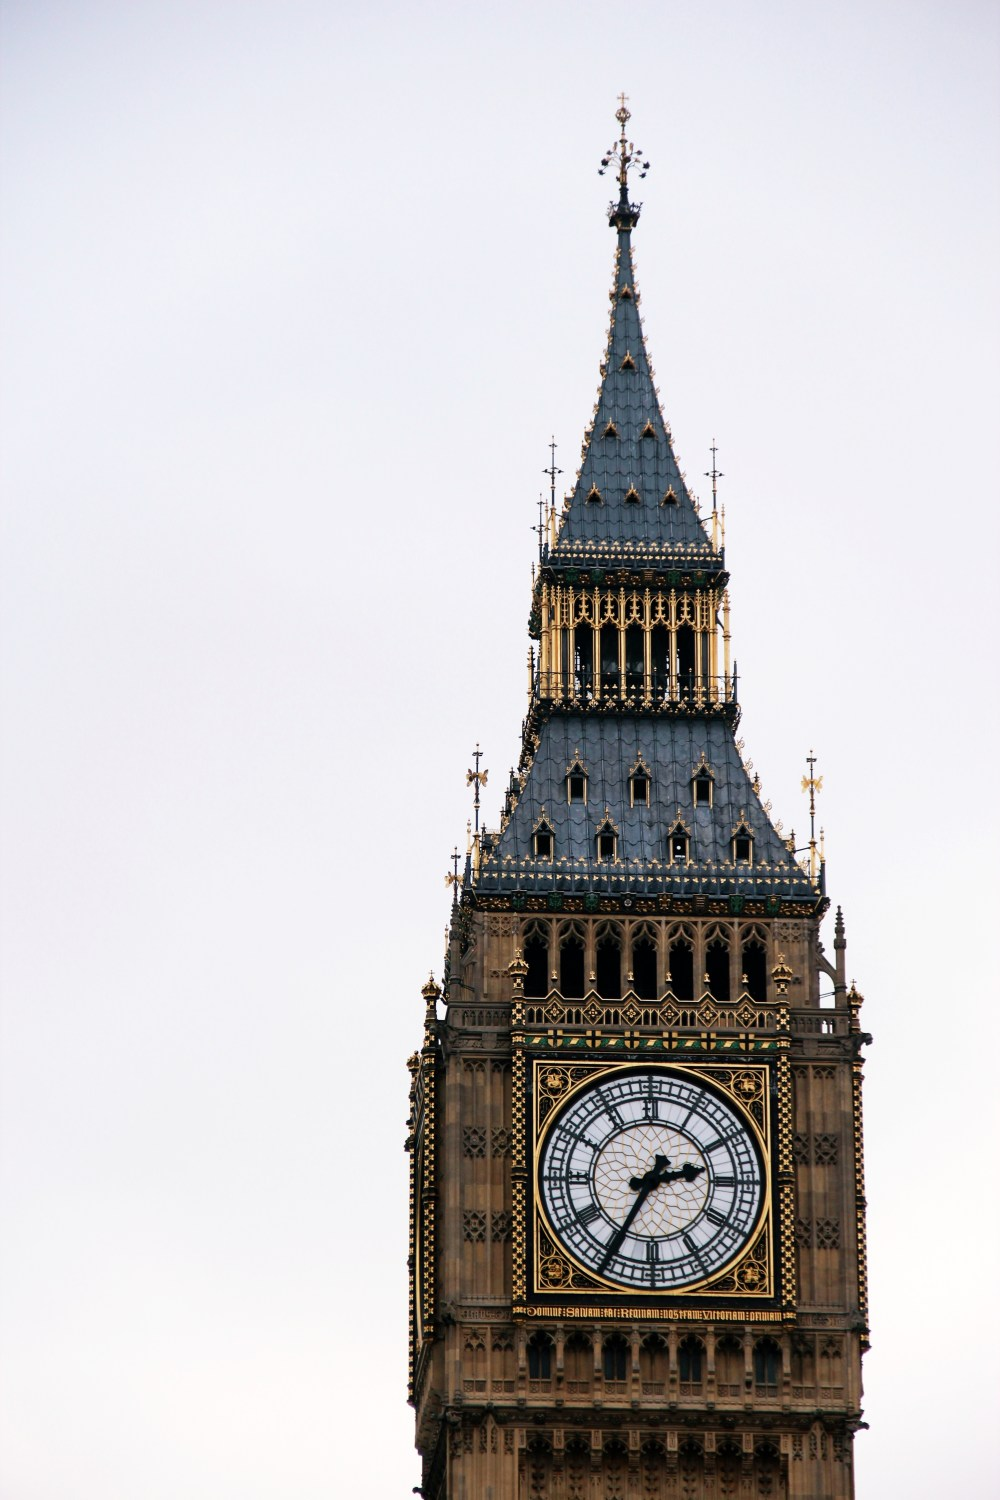 8 Dec 2016: Big Ben | London, England